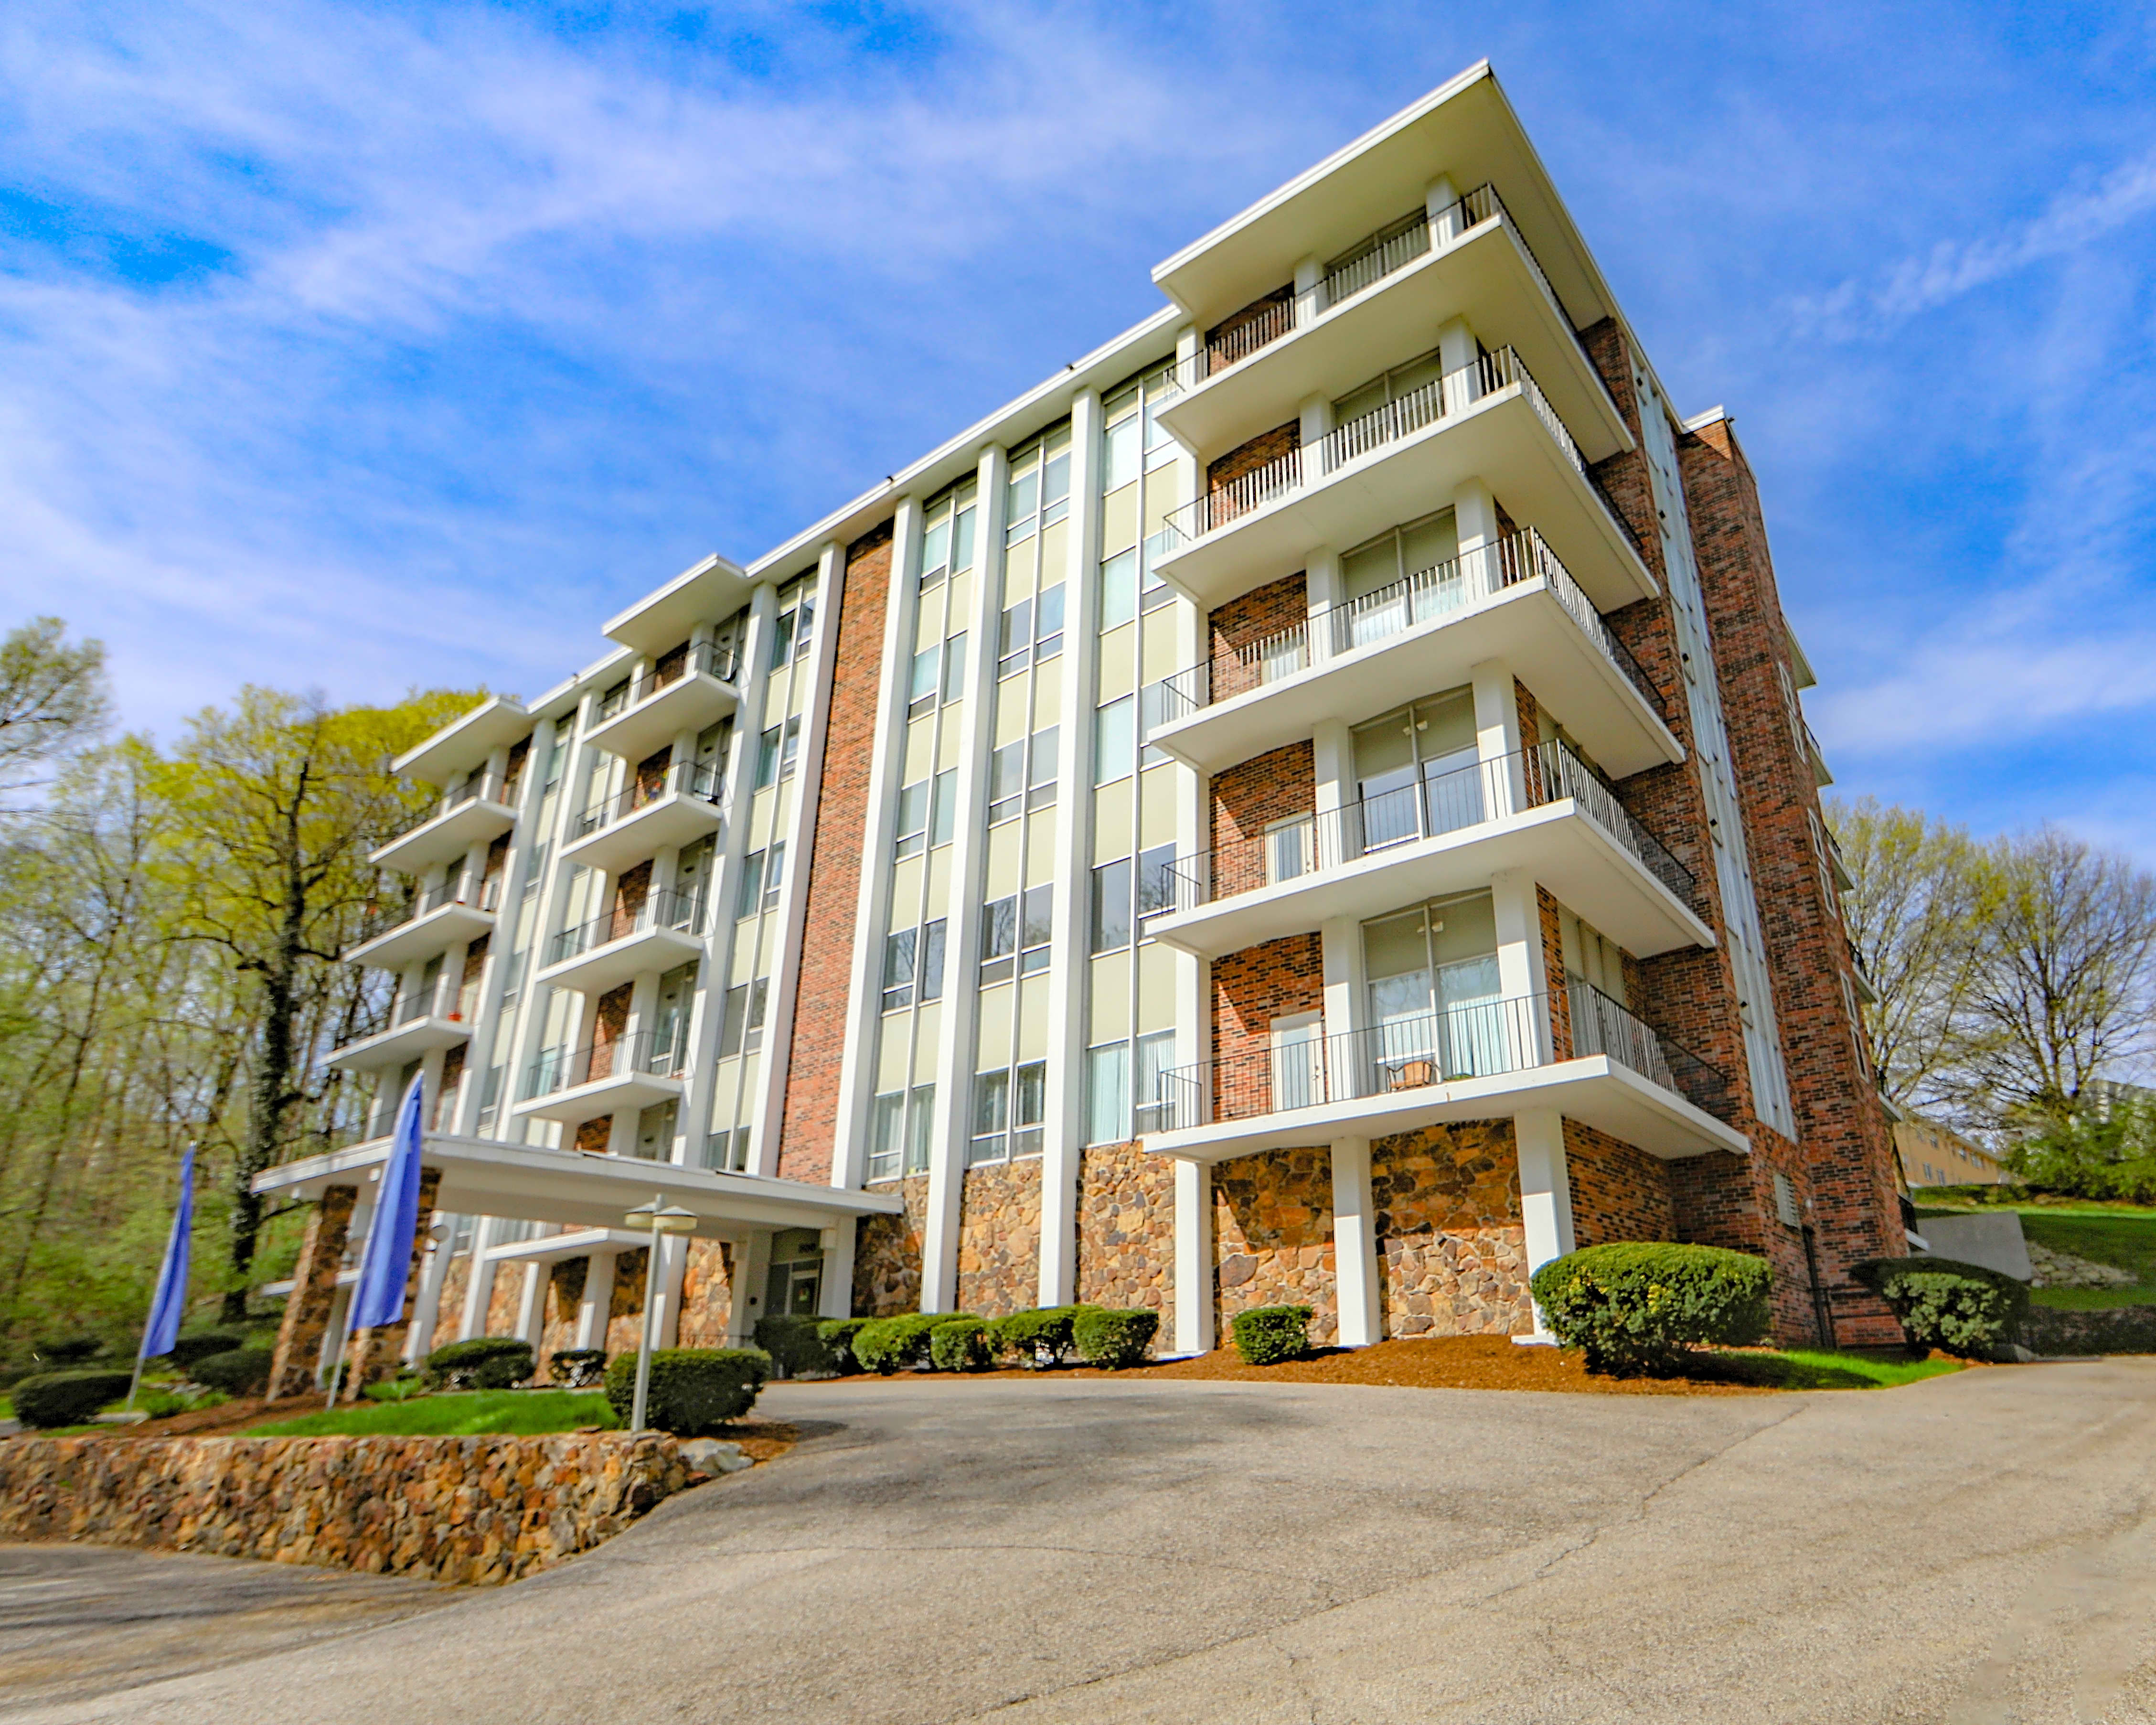 Apartments Near Tricoci University of Beauty Culture-Lafayette Valley Tower/Prospect Hill Apartments for Tricoci University of Beauty Culture-Lafayette Students in Lafayette, IN